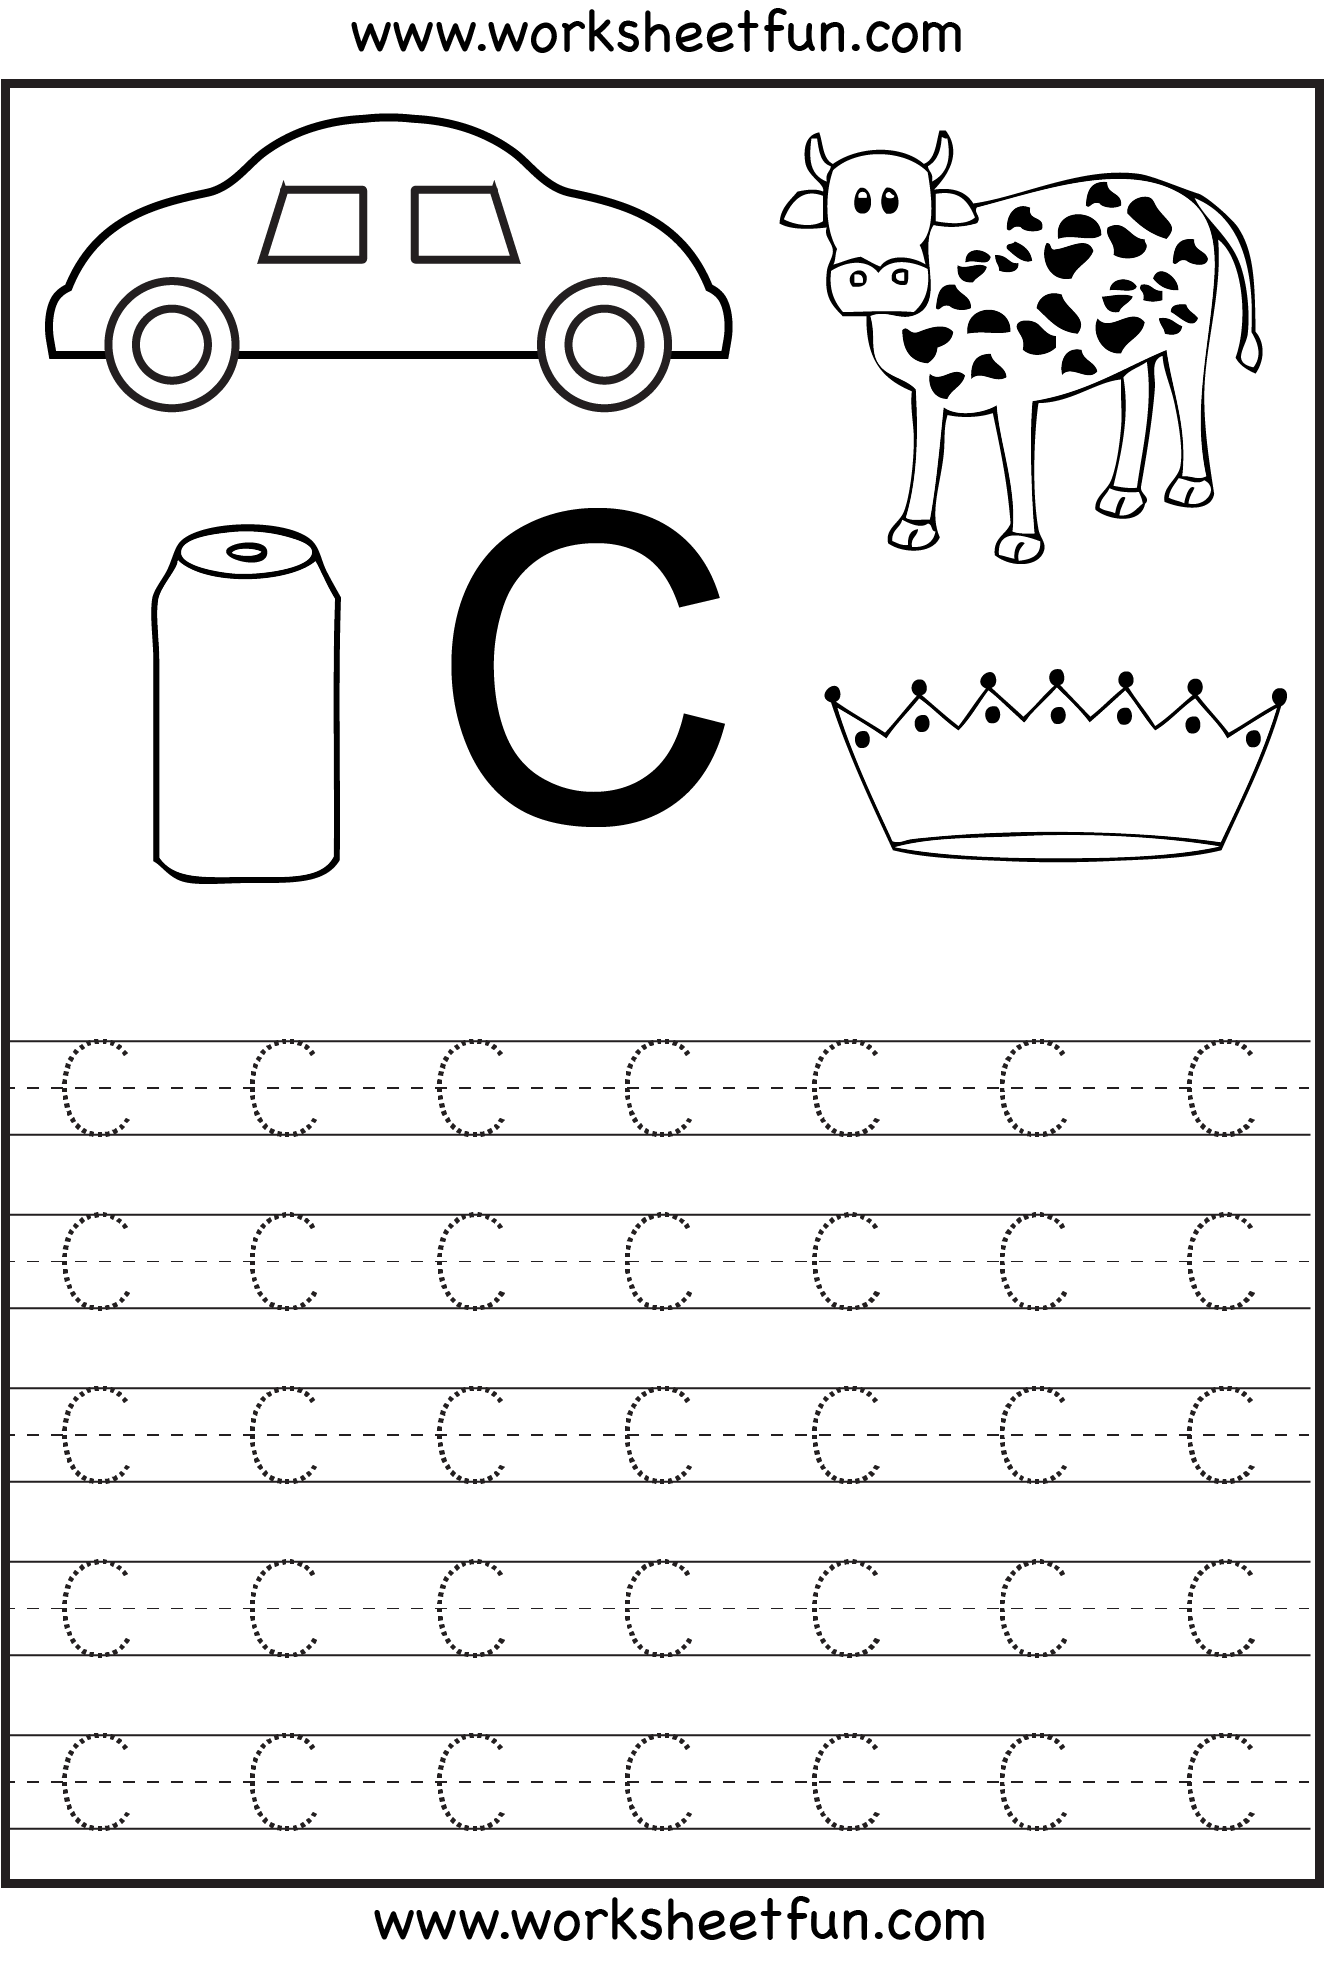 Worksheetfun free printable worksheets kid activities